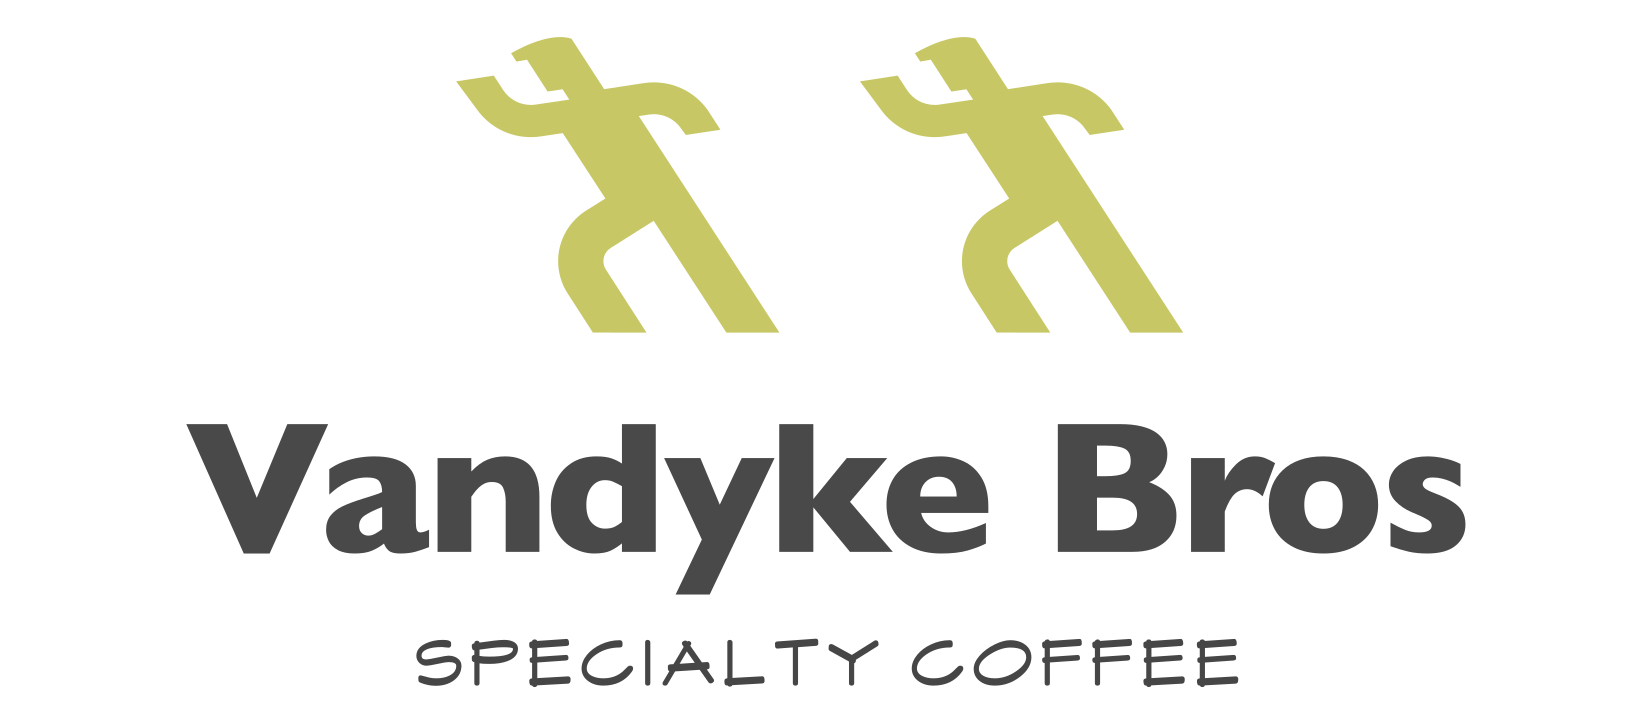 Vandyke Bros Specialty Coffee